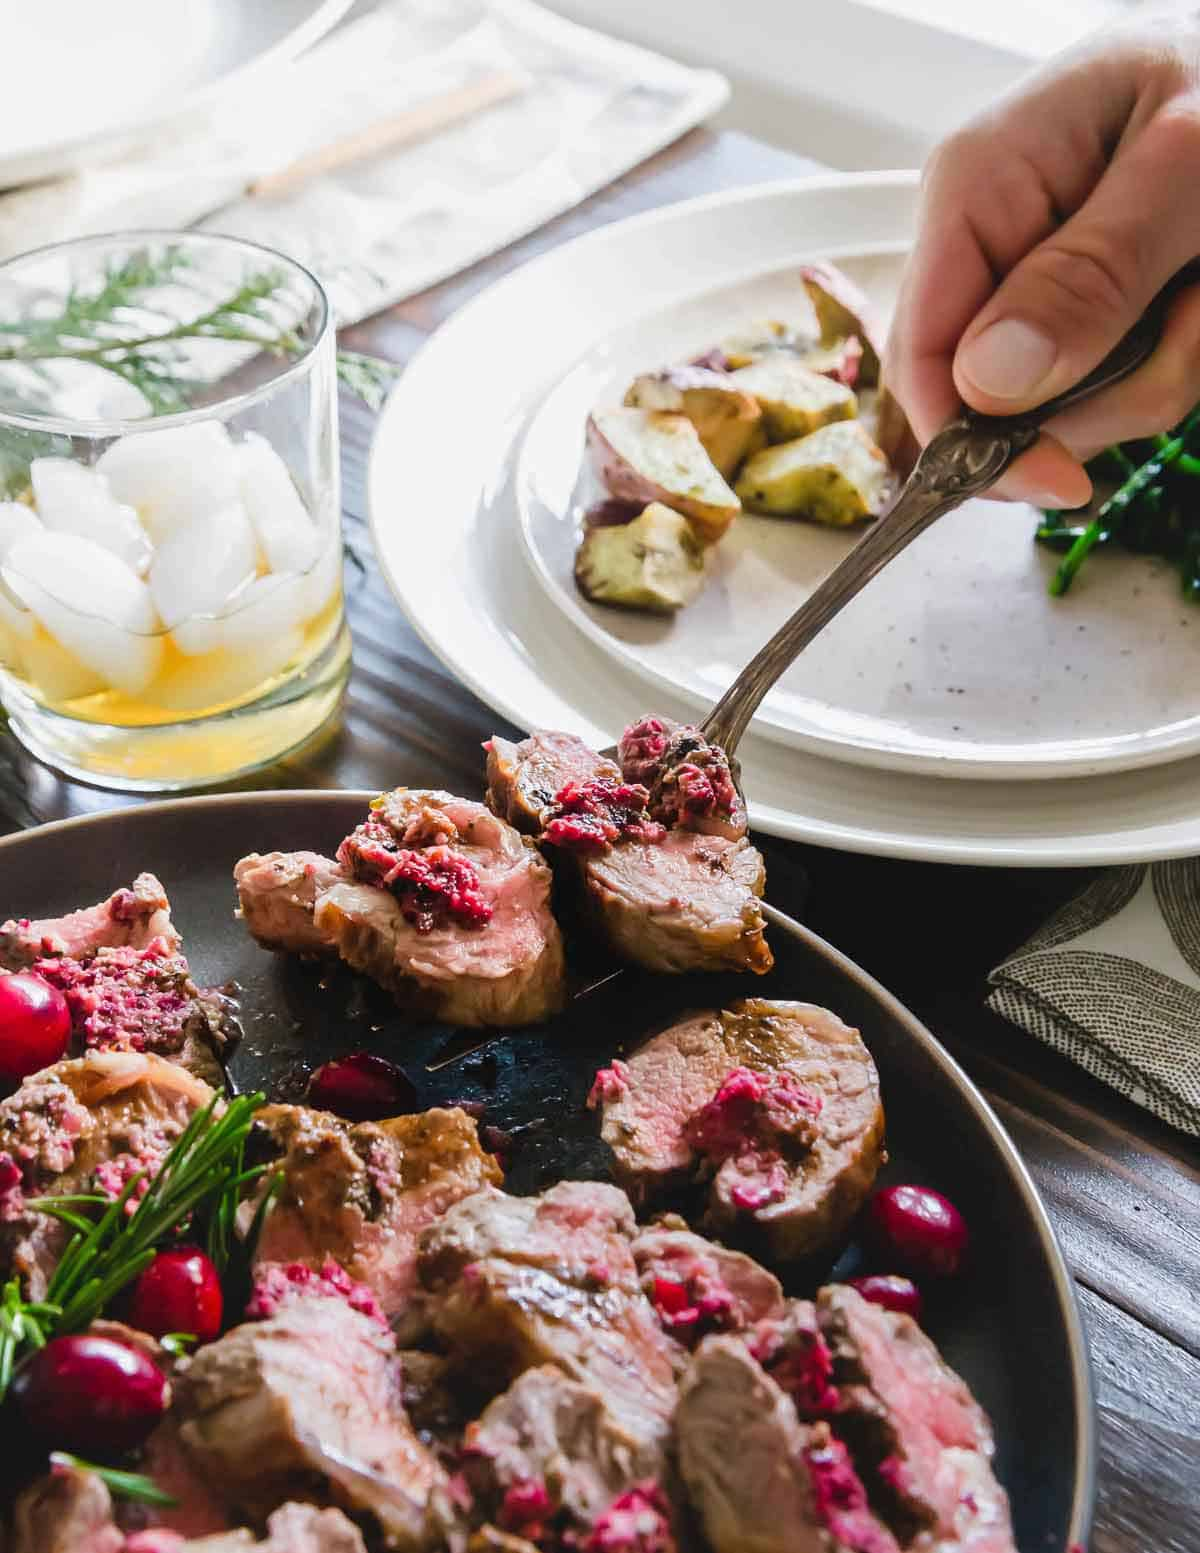 This stuffed lamb recipe uses lamb meat deboned from a rack of ribs and an easy to make cranberry pesto for bright, bold winter flavors.